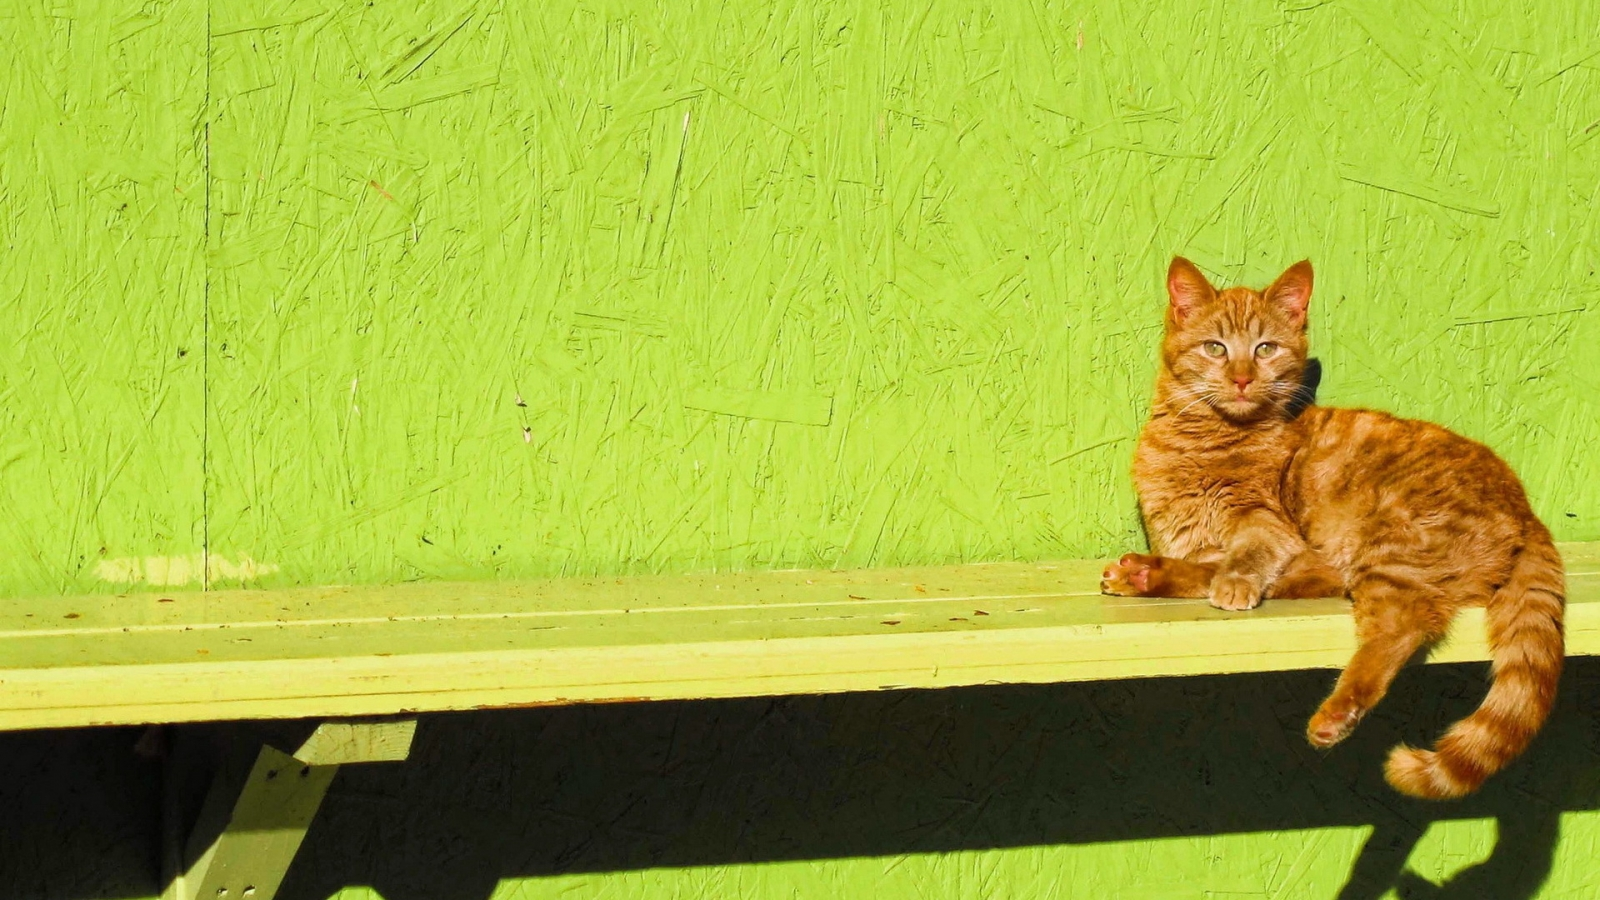 Ginger Cat Sitting on a Bench for 1600 x 900 HDTV resolution